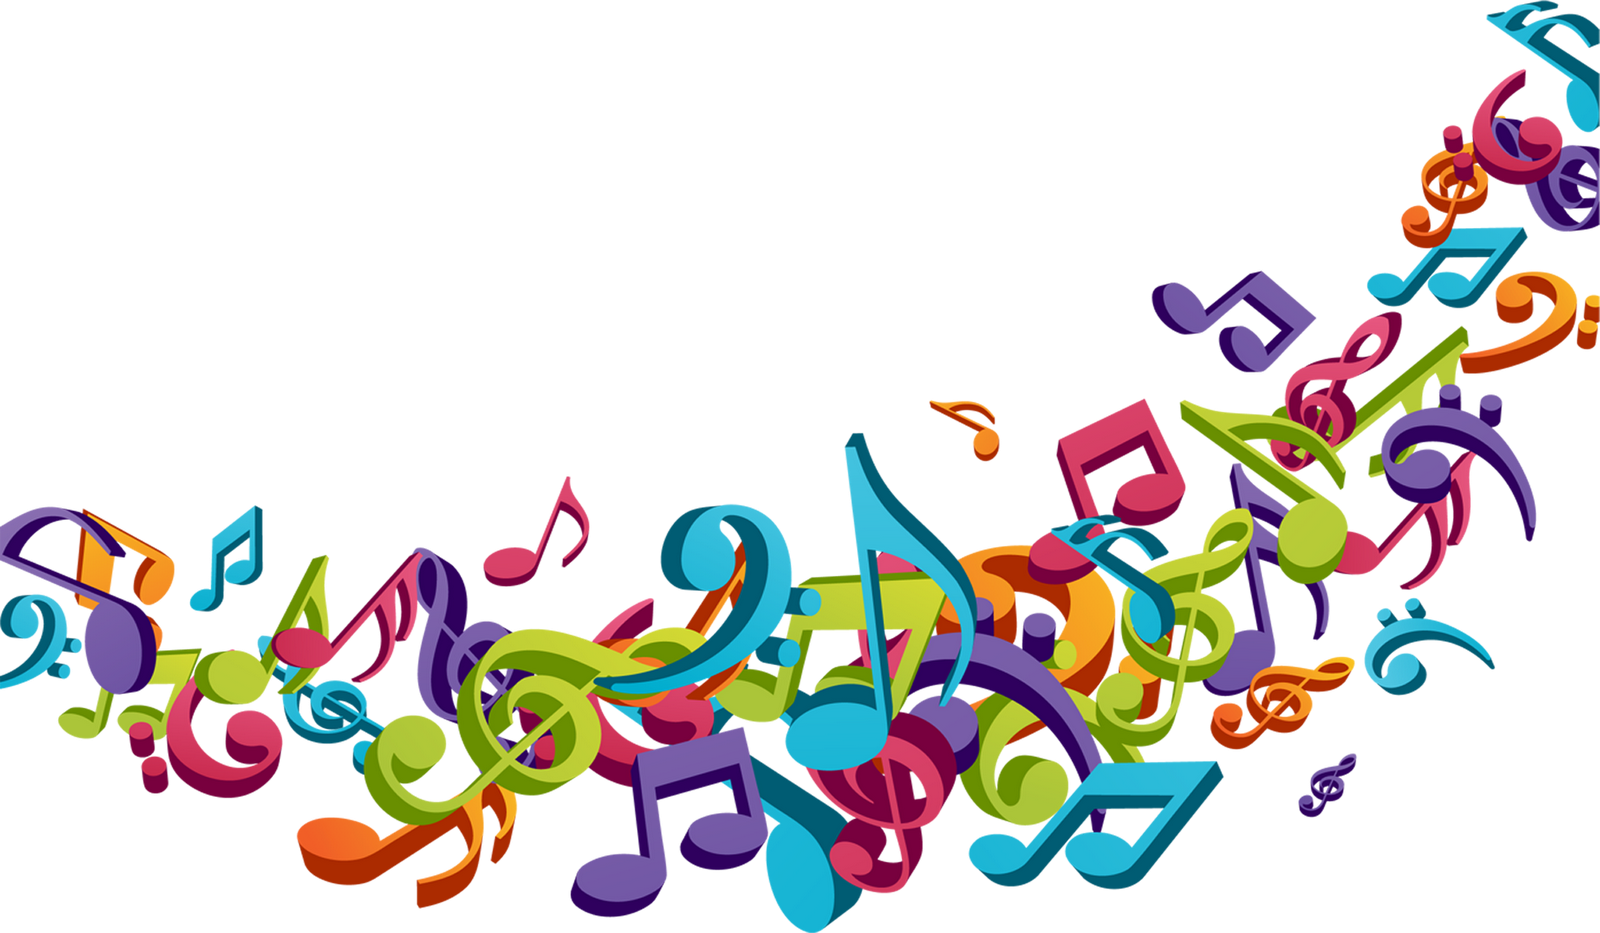 music notes png the sound music laulasmaa laulasmaa spa #10098